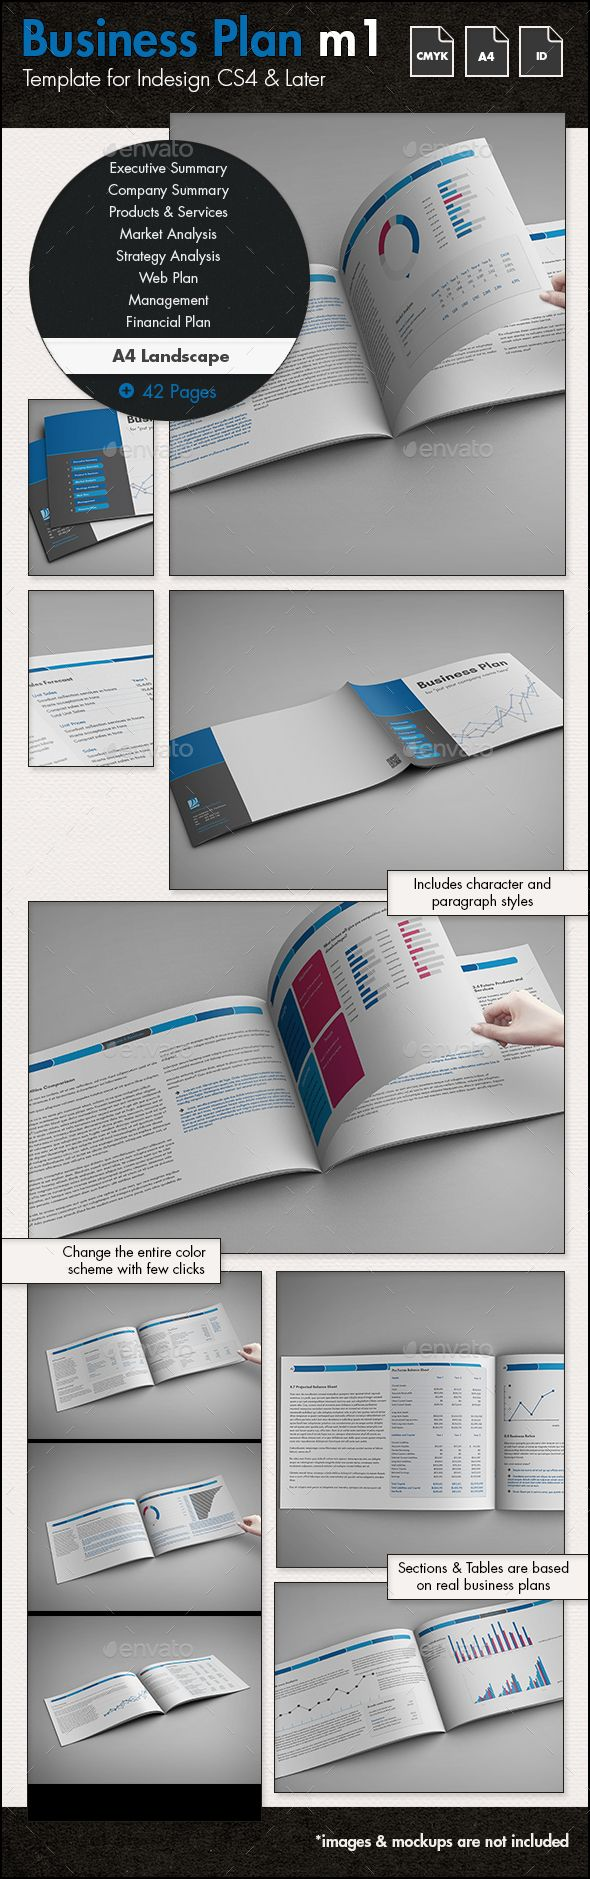 Business Plan Template m1 A4 Landscape